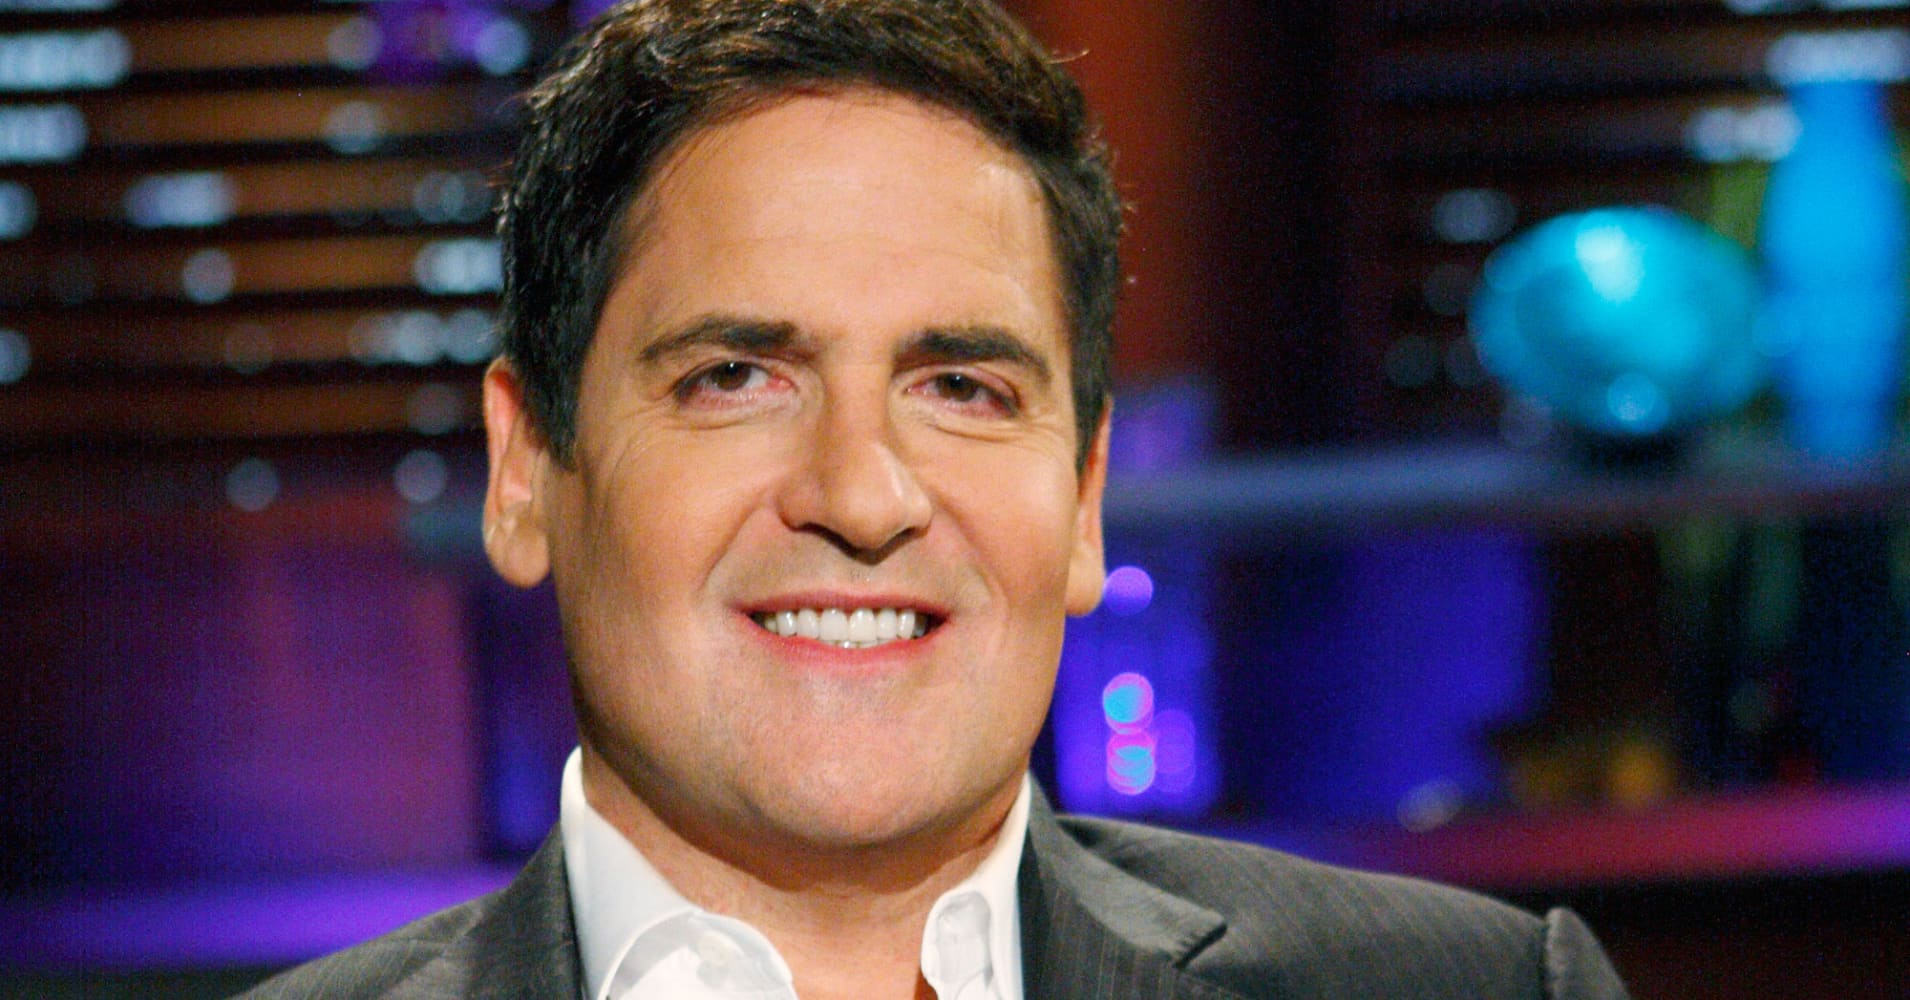 an analysis of mark cuban Mark cuban, the outspoken owner of the dallas mavericks, is worth an estimated $33 billion, according to forbes while the majority of this wealth can be attributed to two transactions he made during the dot-com era, he is a born entrepreneur and has been buying, trading, profiting and schmoozing his.